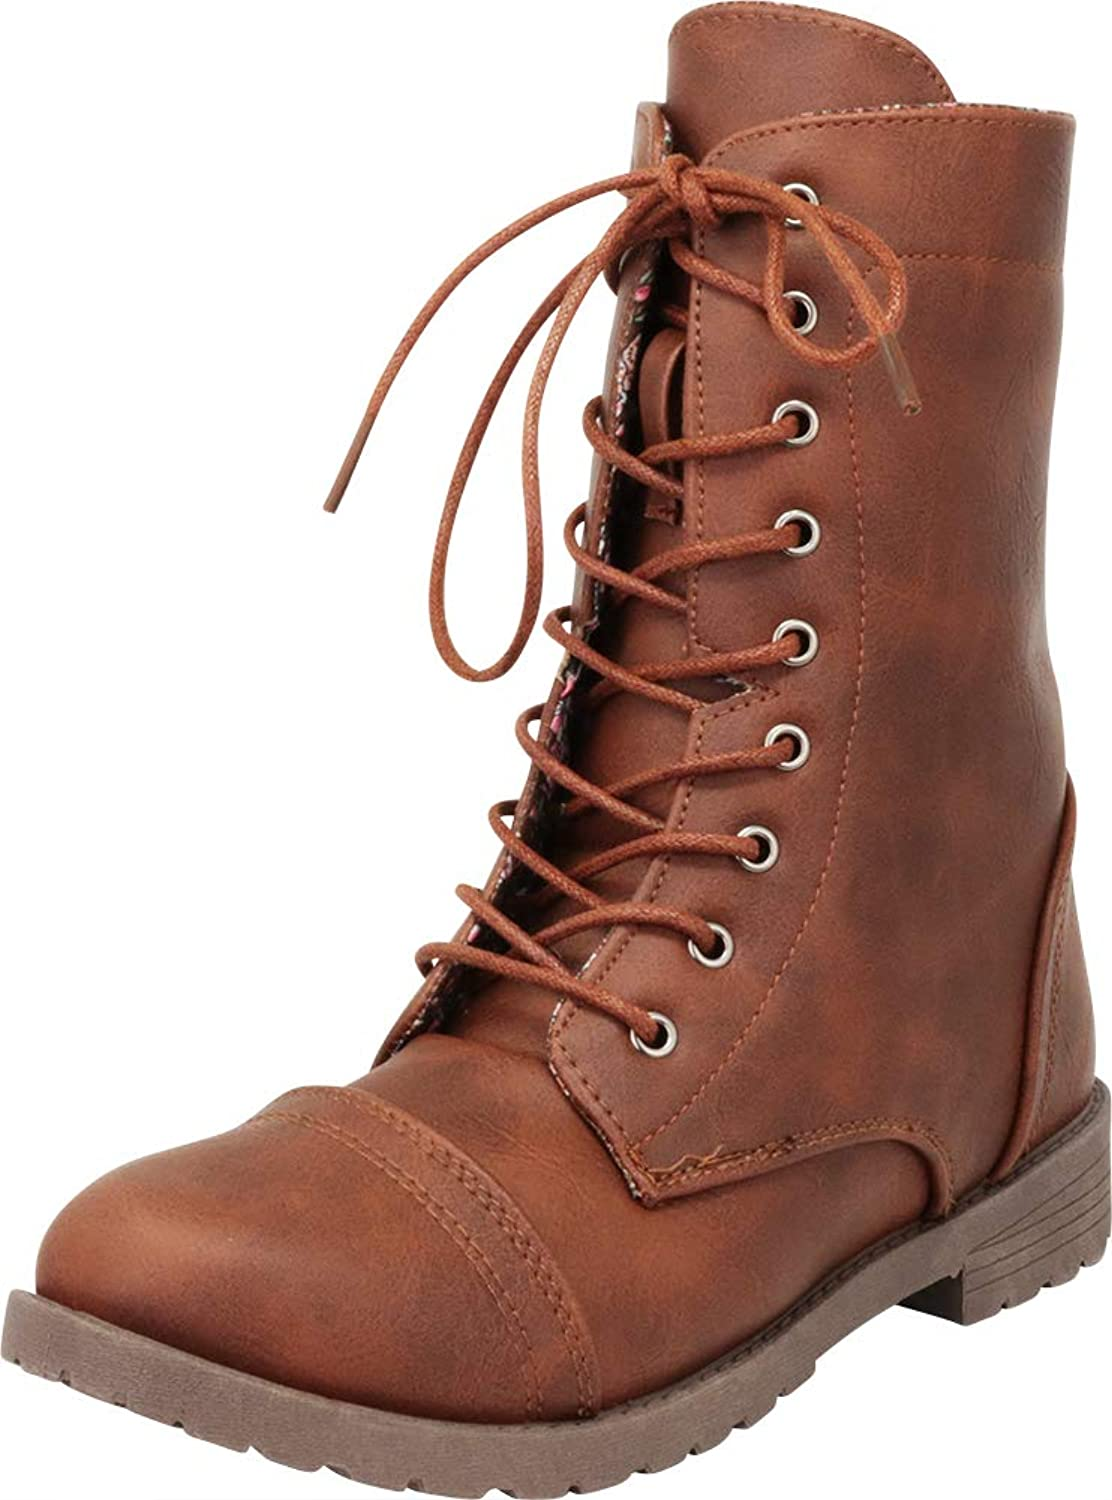 Cambridge Select Women's Classic 90s Lace-Up Chunky Lug Sole Combat Boot